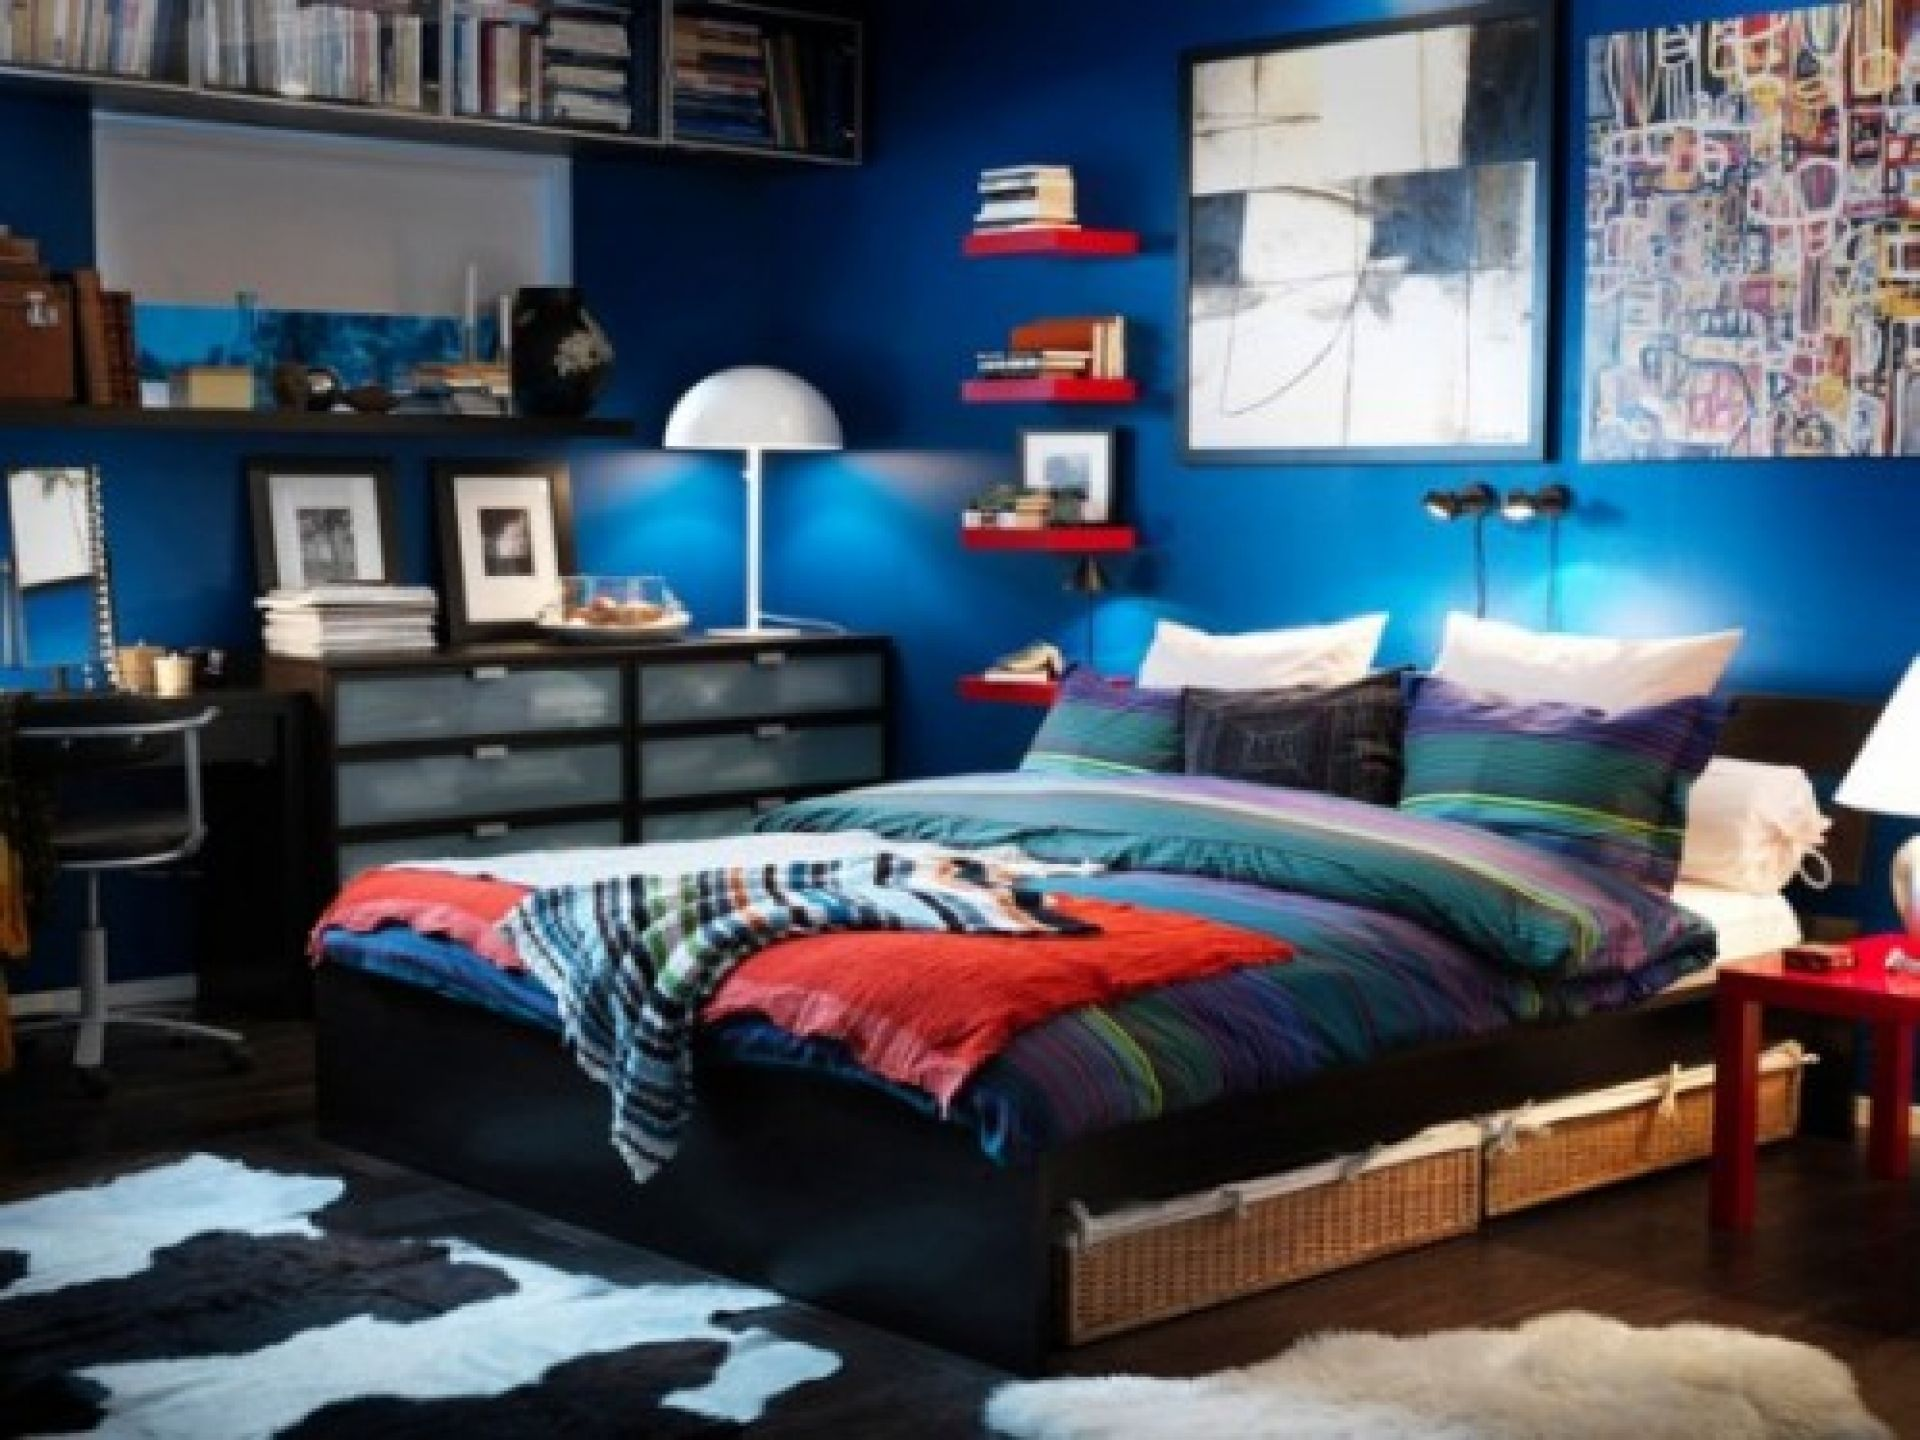 Extraordinary Best Ideas Bedroom Ideas Beautiful Cool Room Gadgets For Guys Cool Posters Awesome Idea Ikea Bedroom Design Boy Bedroom Design Boys Bedroom Decor